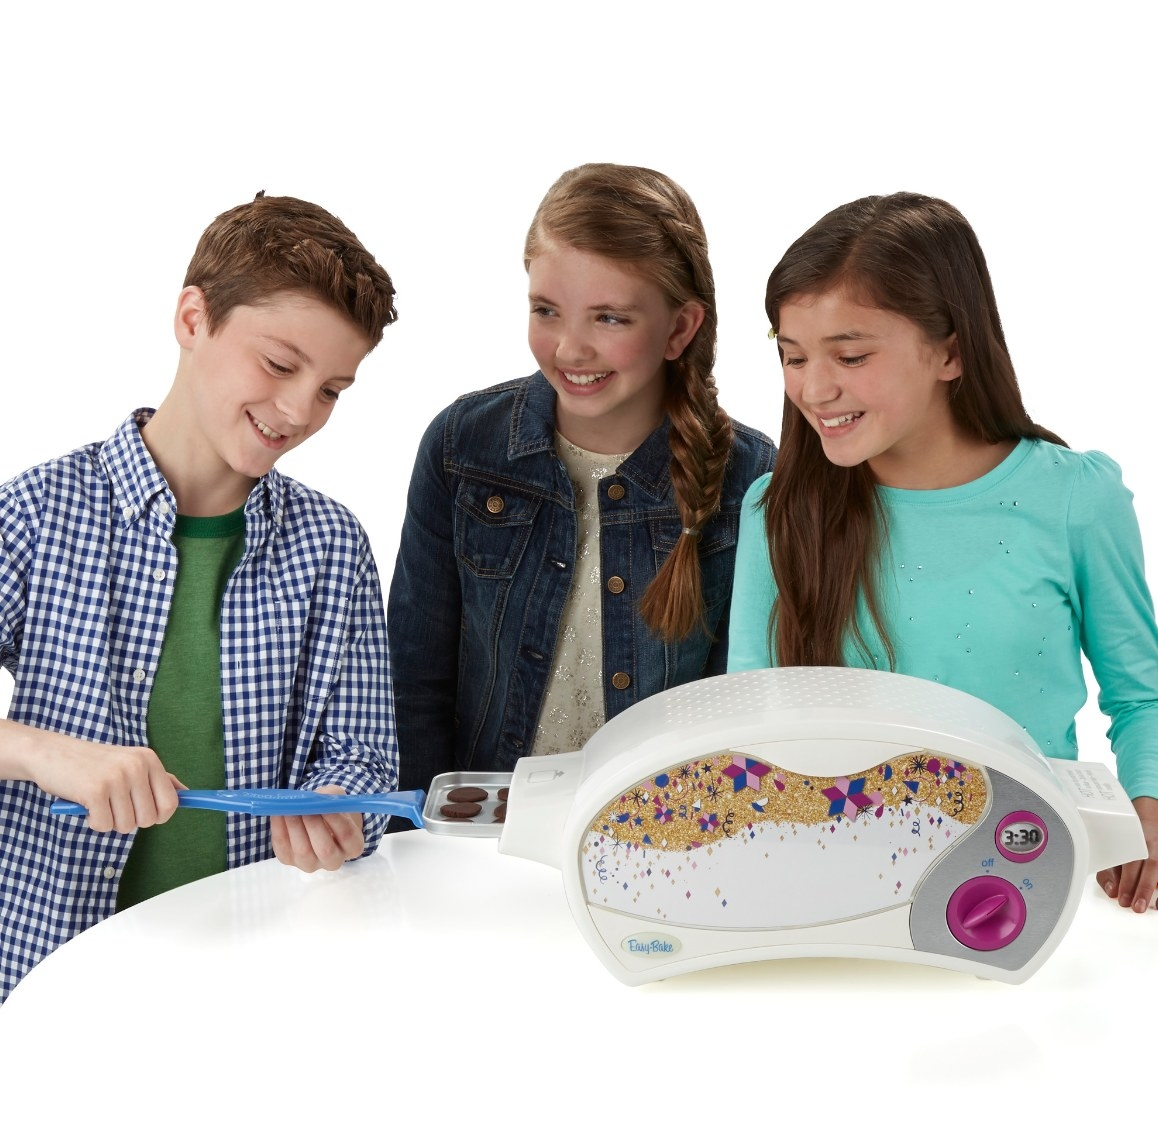 The easy-bake ultimate oven in white with cookies going inside it